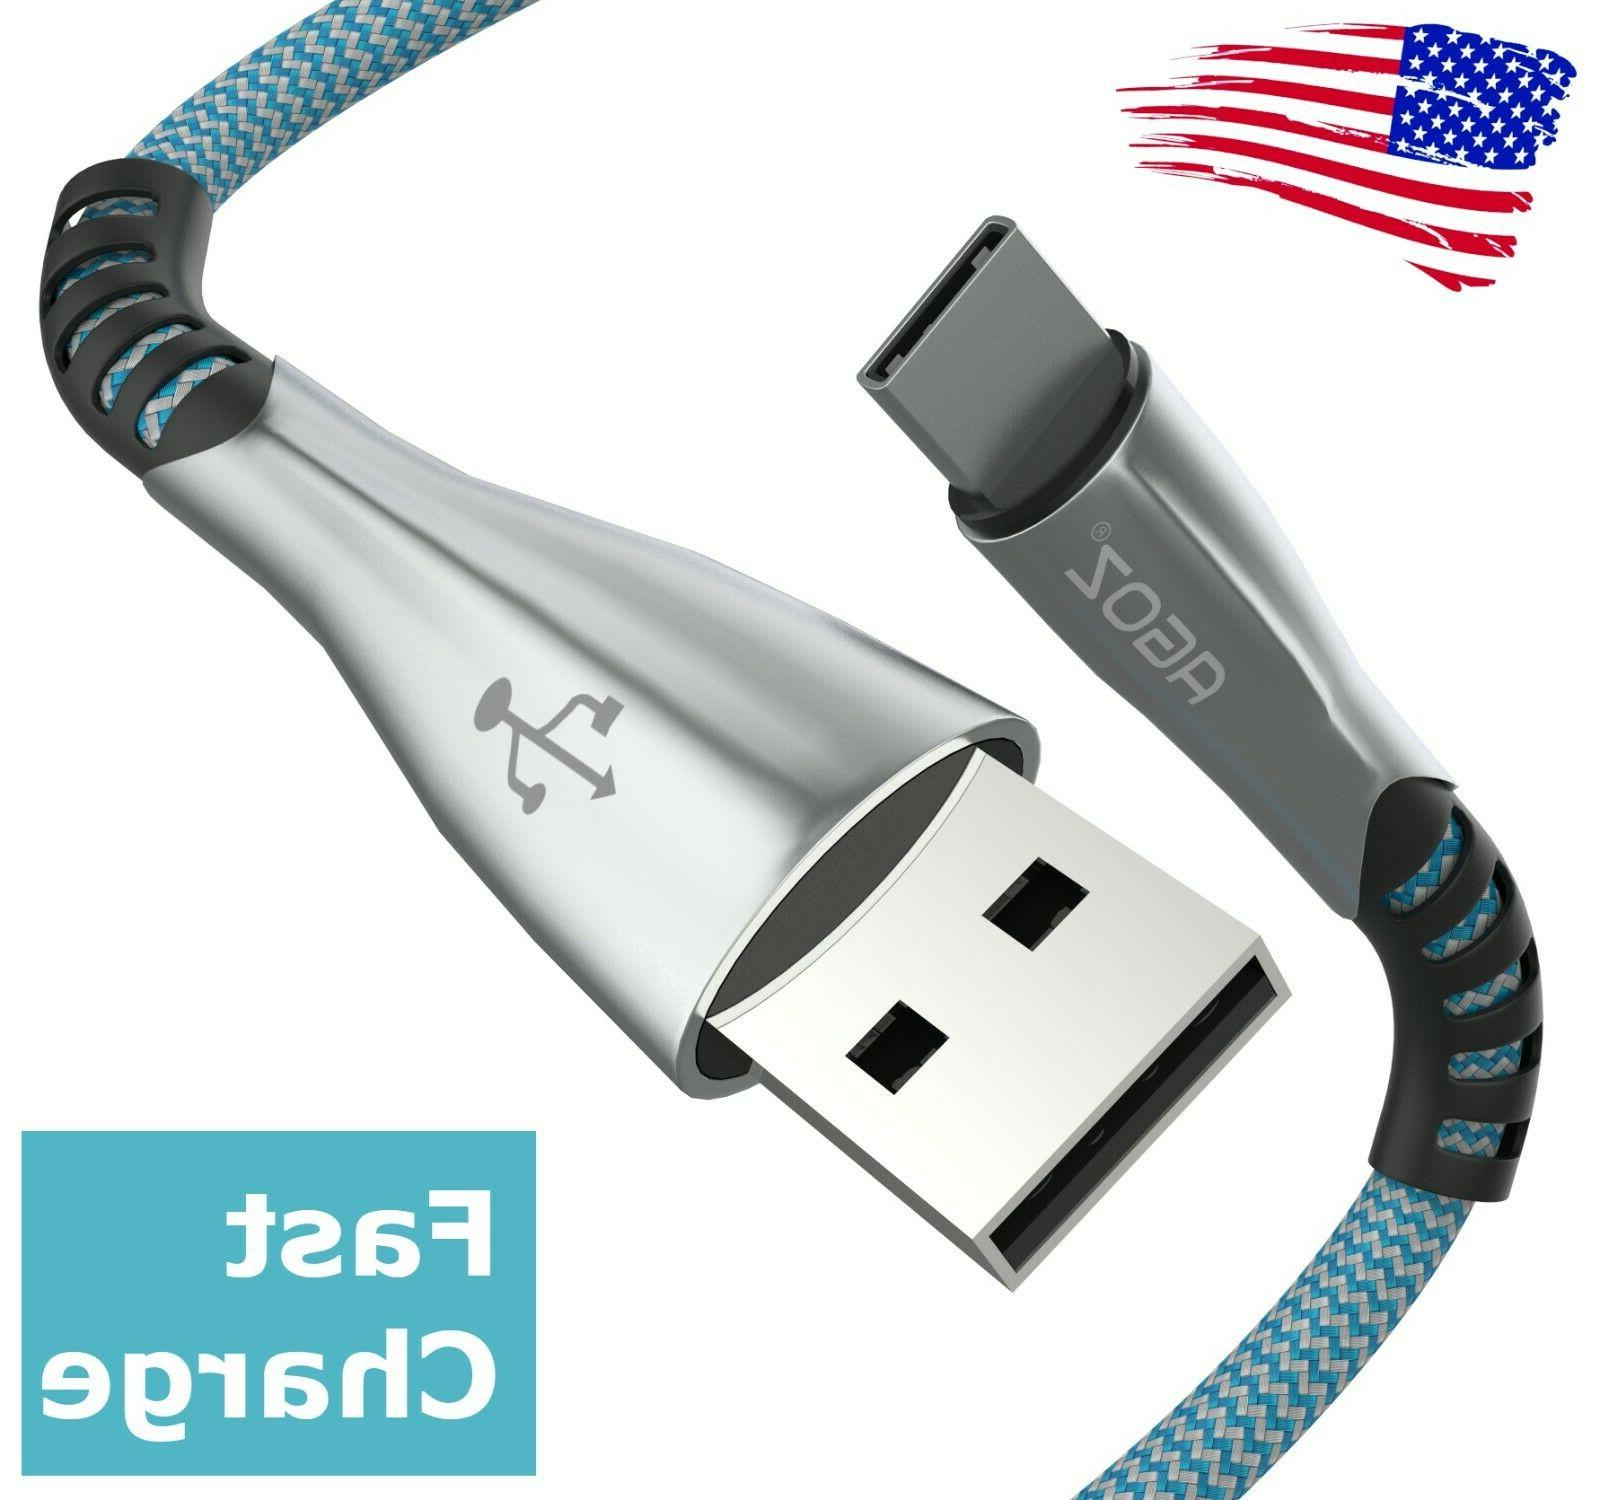 premium type usb c cable fast charger